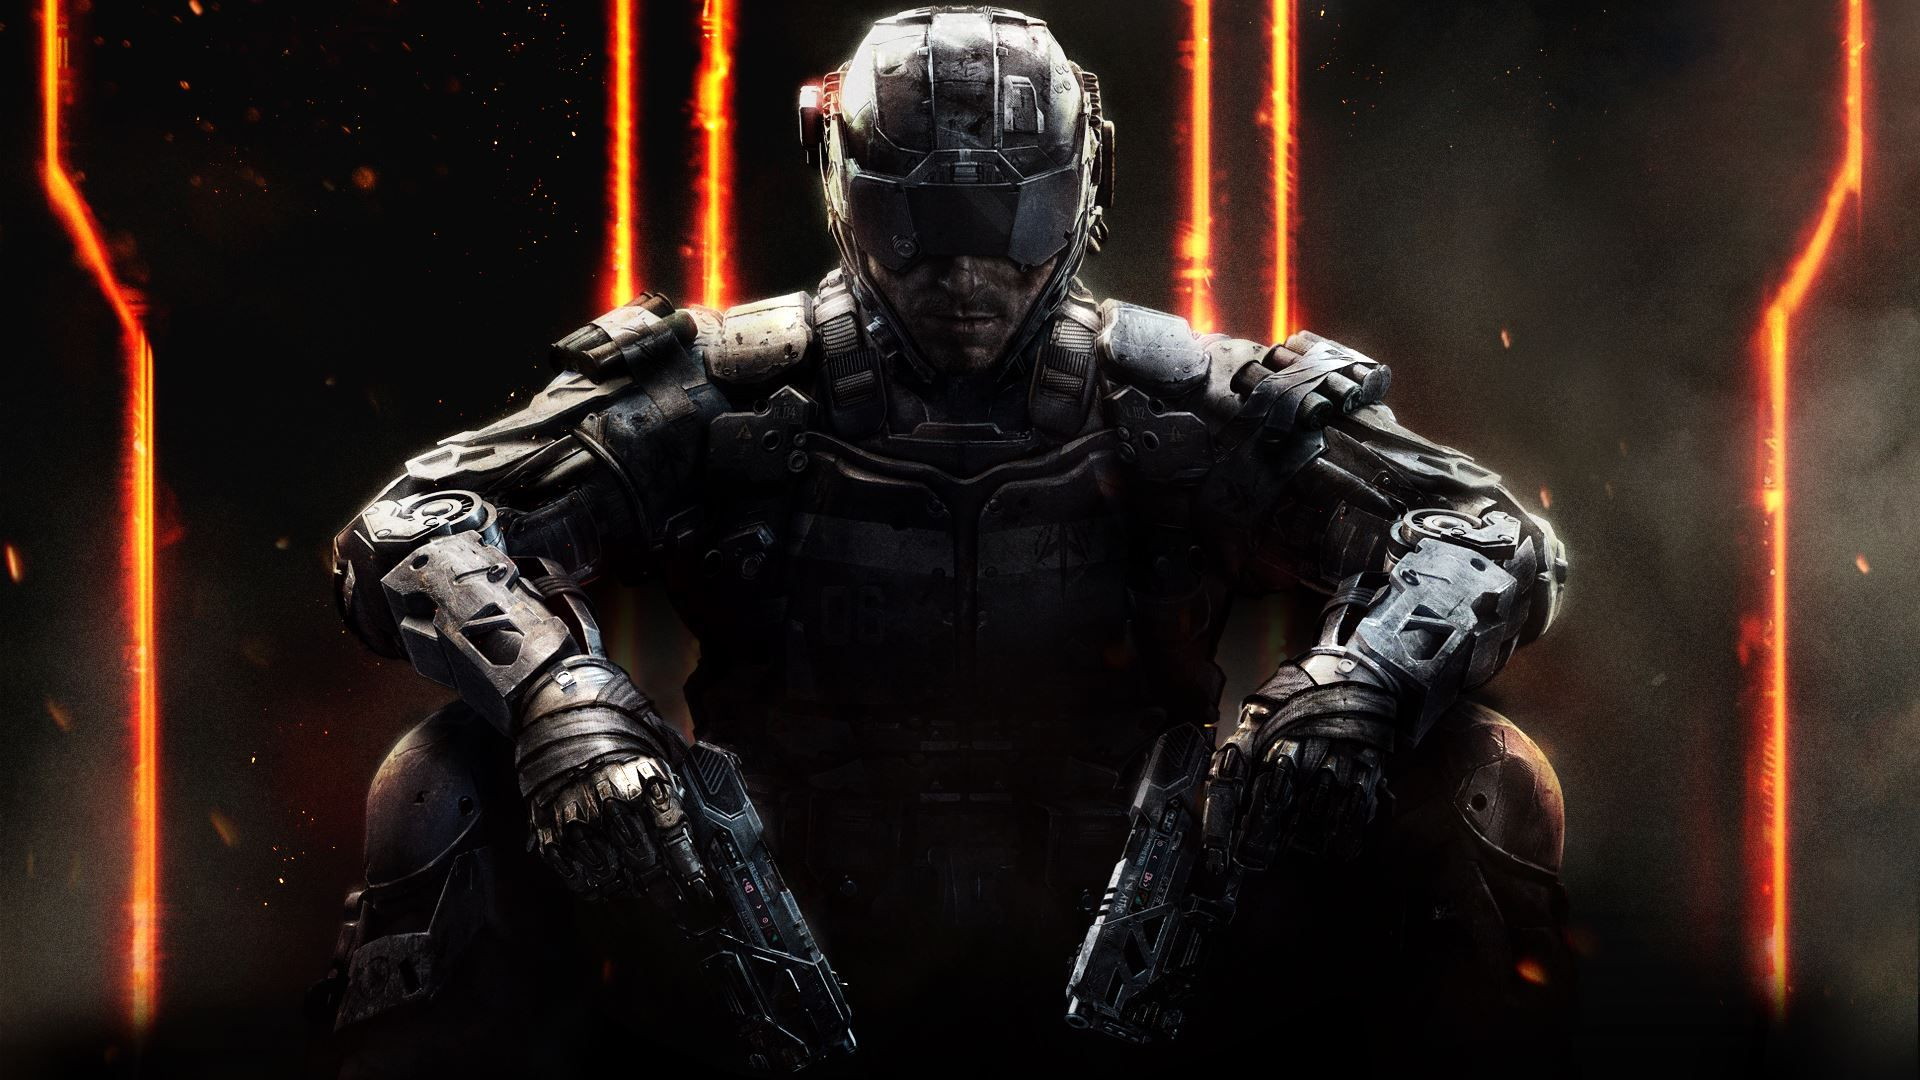 call of duty: black ops 3' beta: this game is going to be even